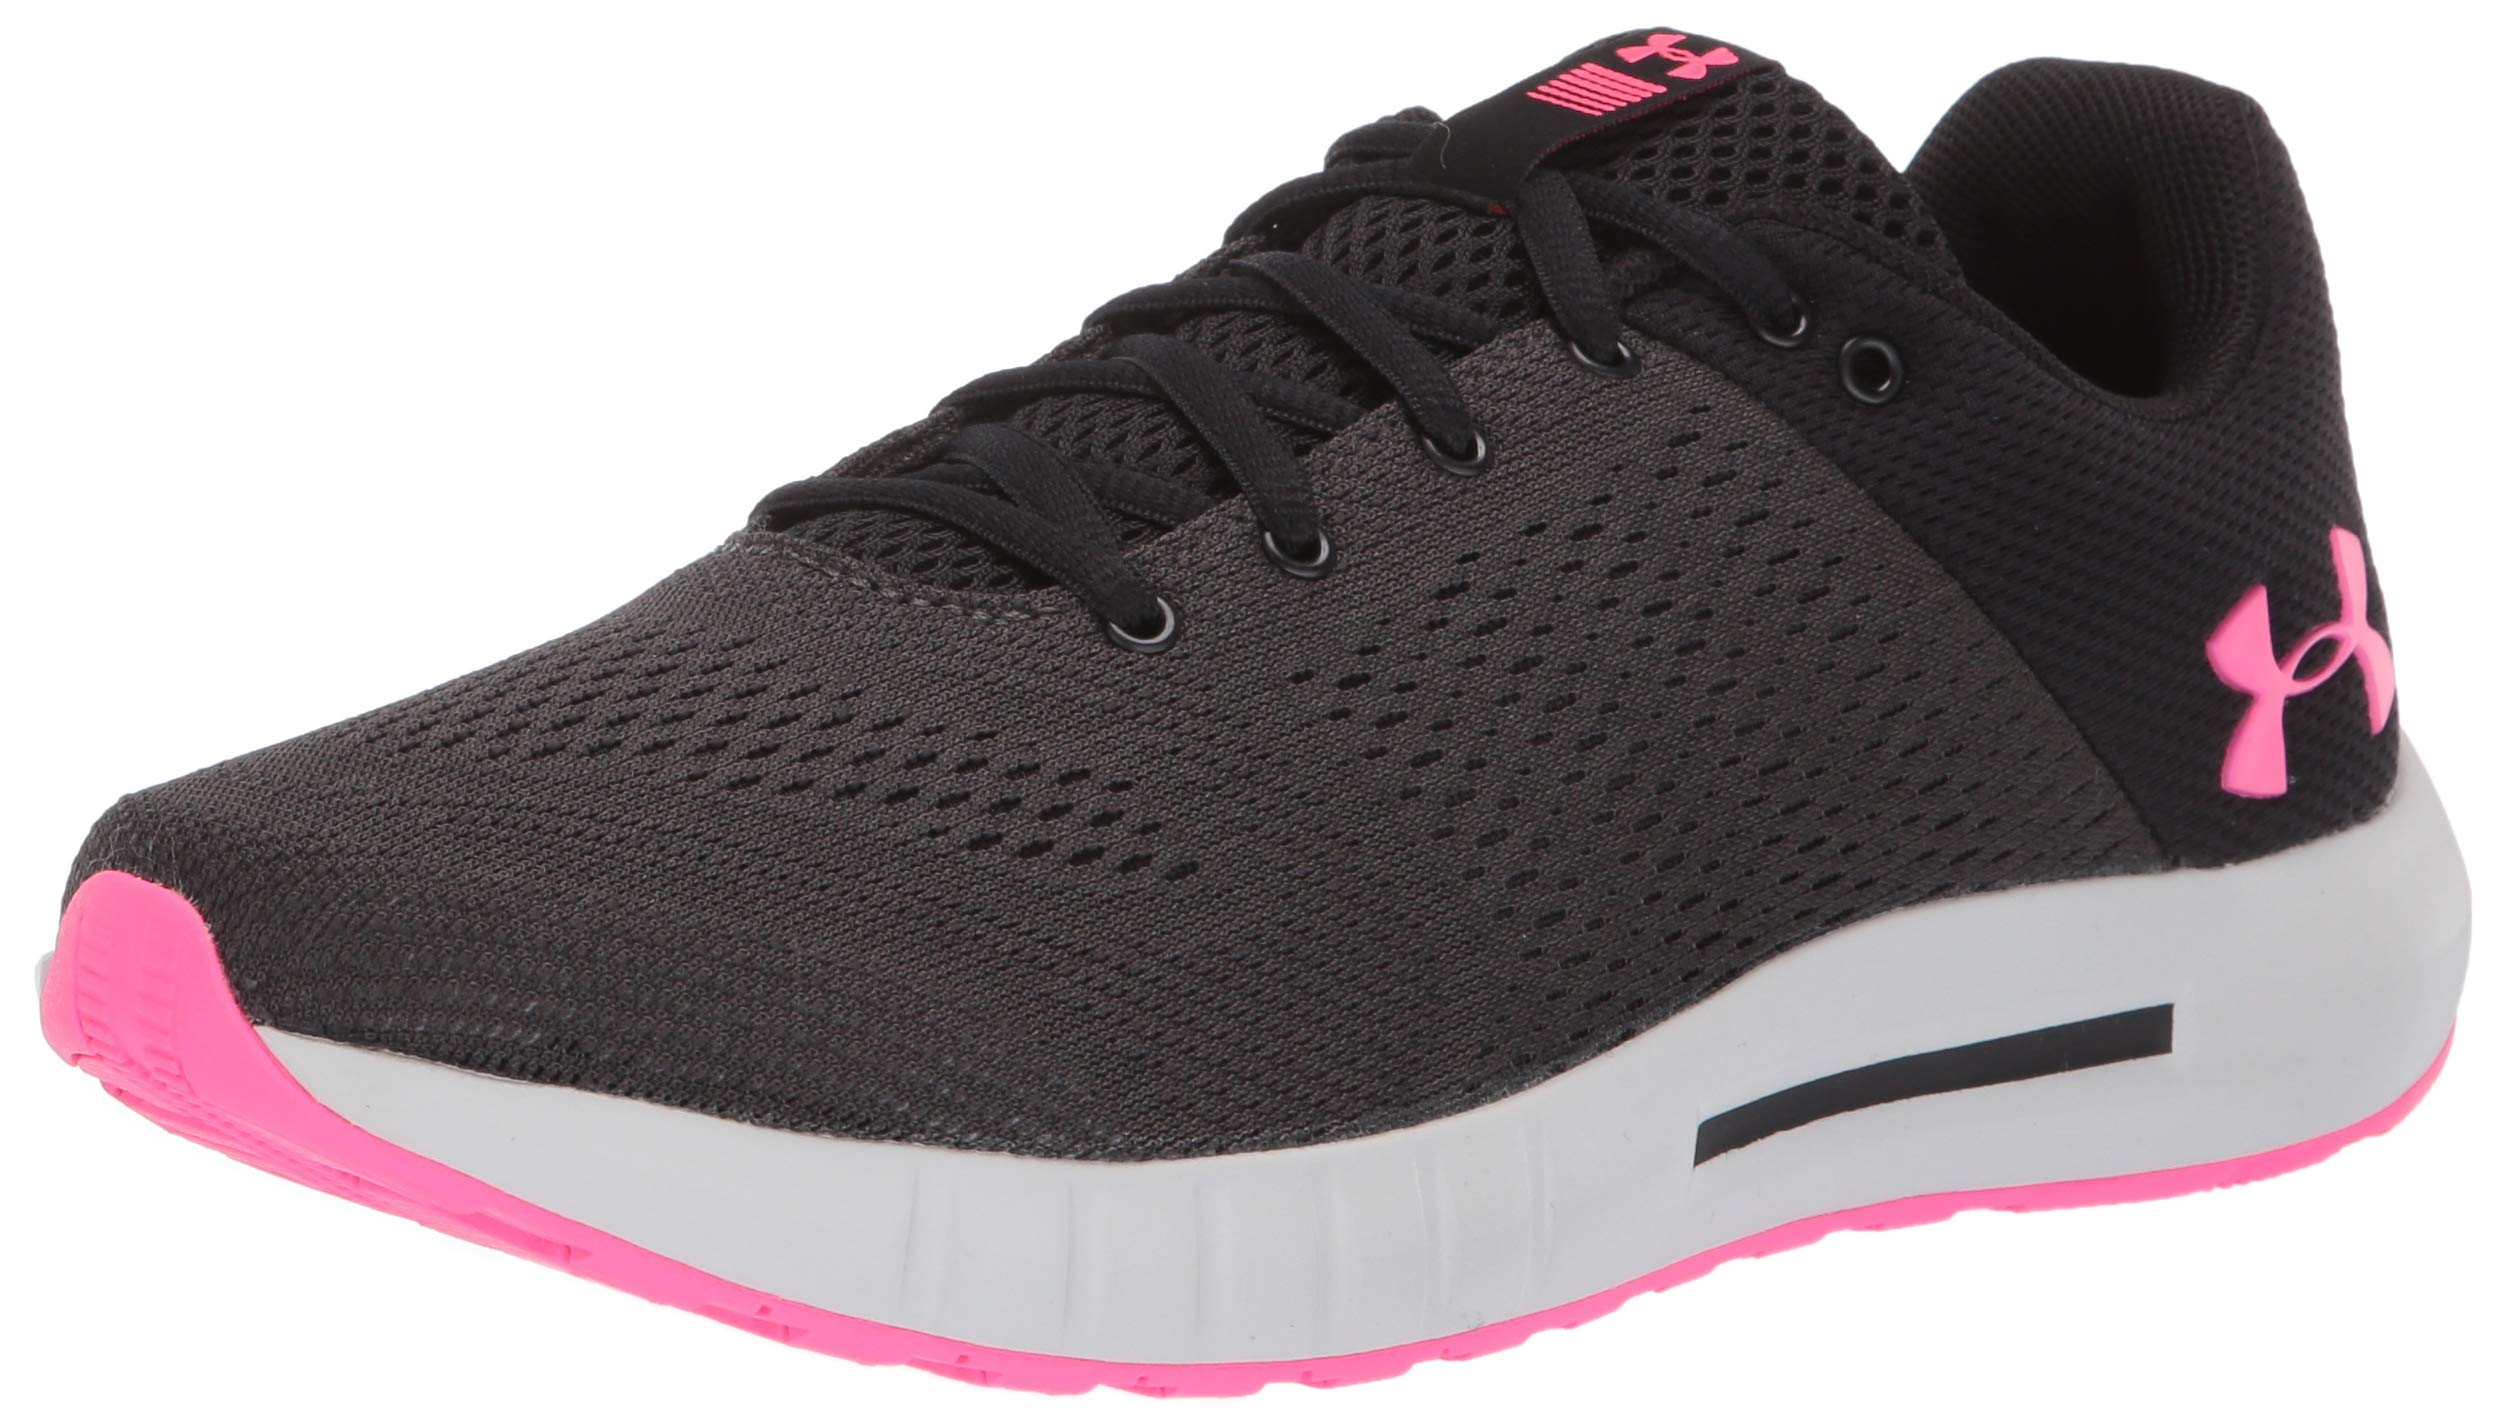 81sxBPGhJdL - Under Armour Women's Micro G Pursuit Running Shoes